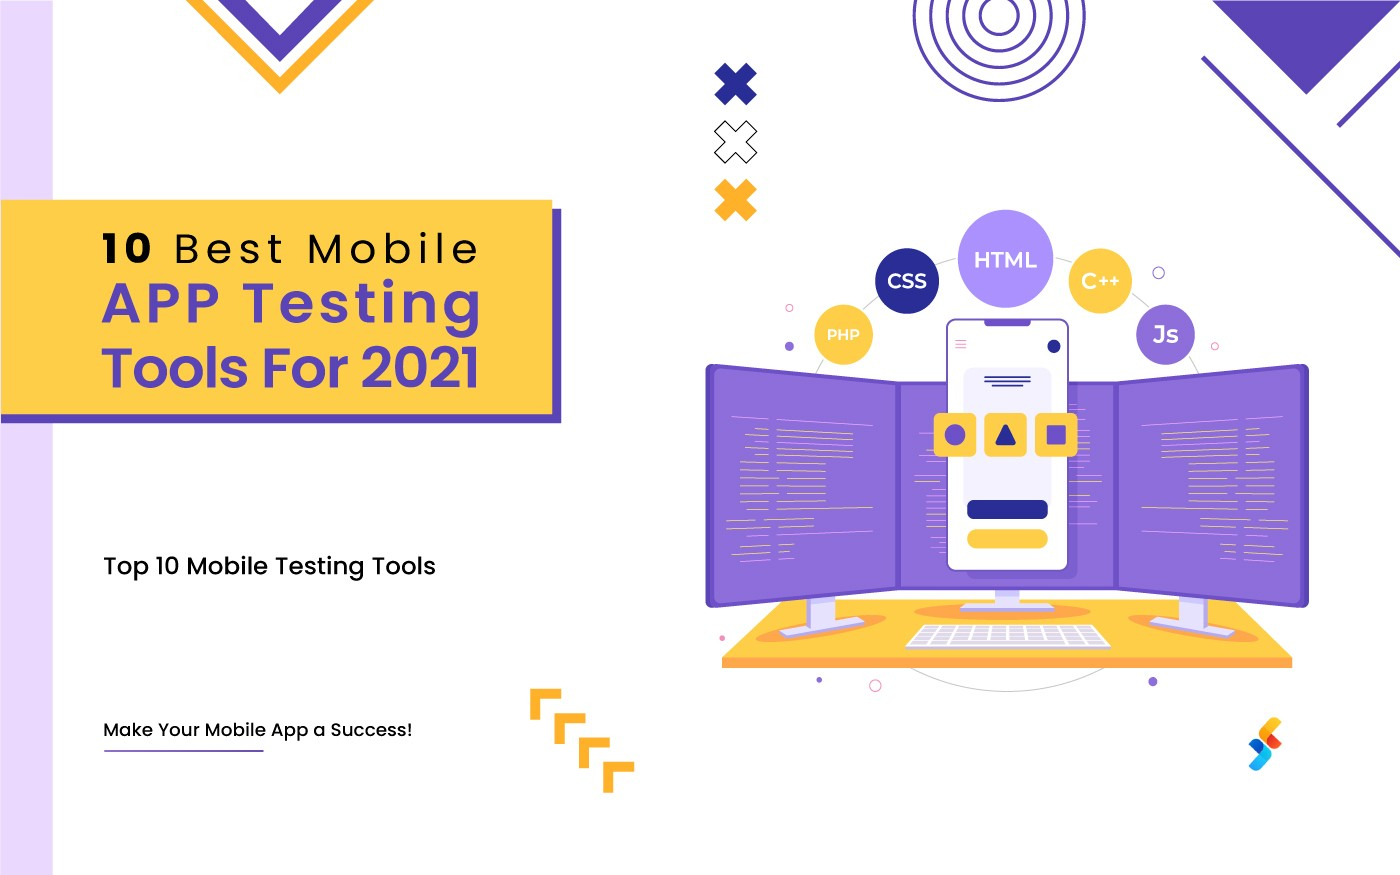 10 Best Mobile Application Testing Tools For 2021